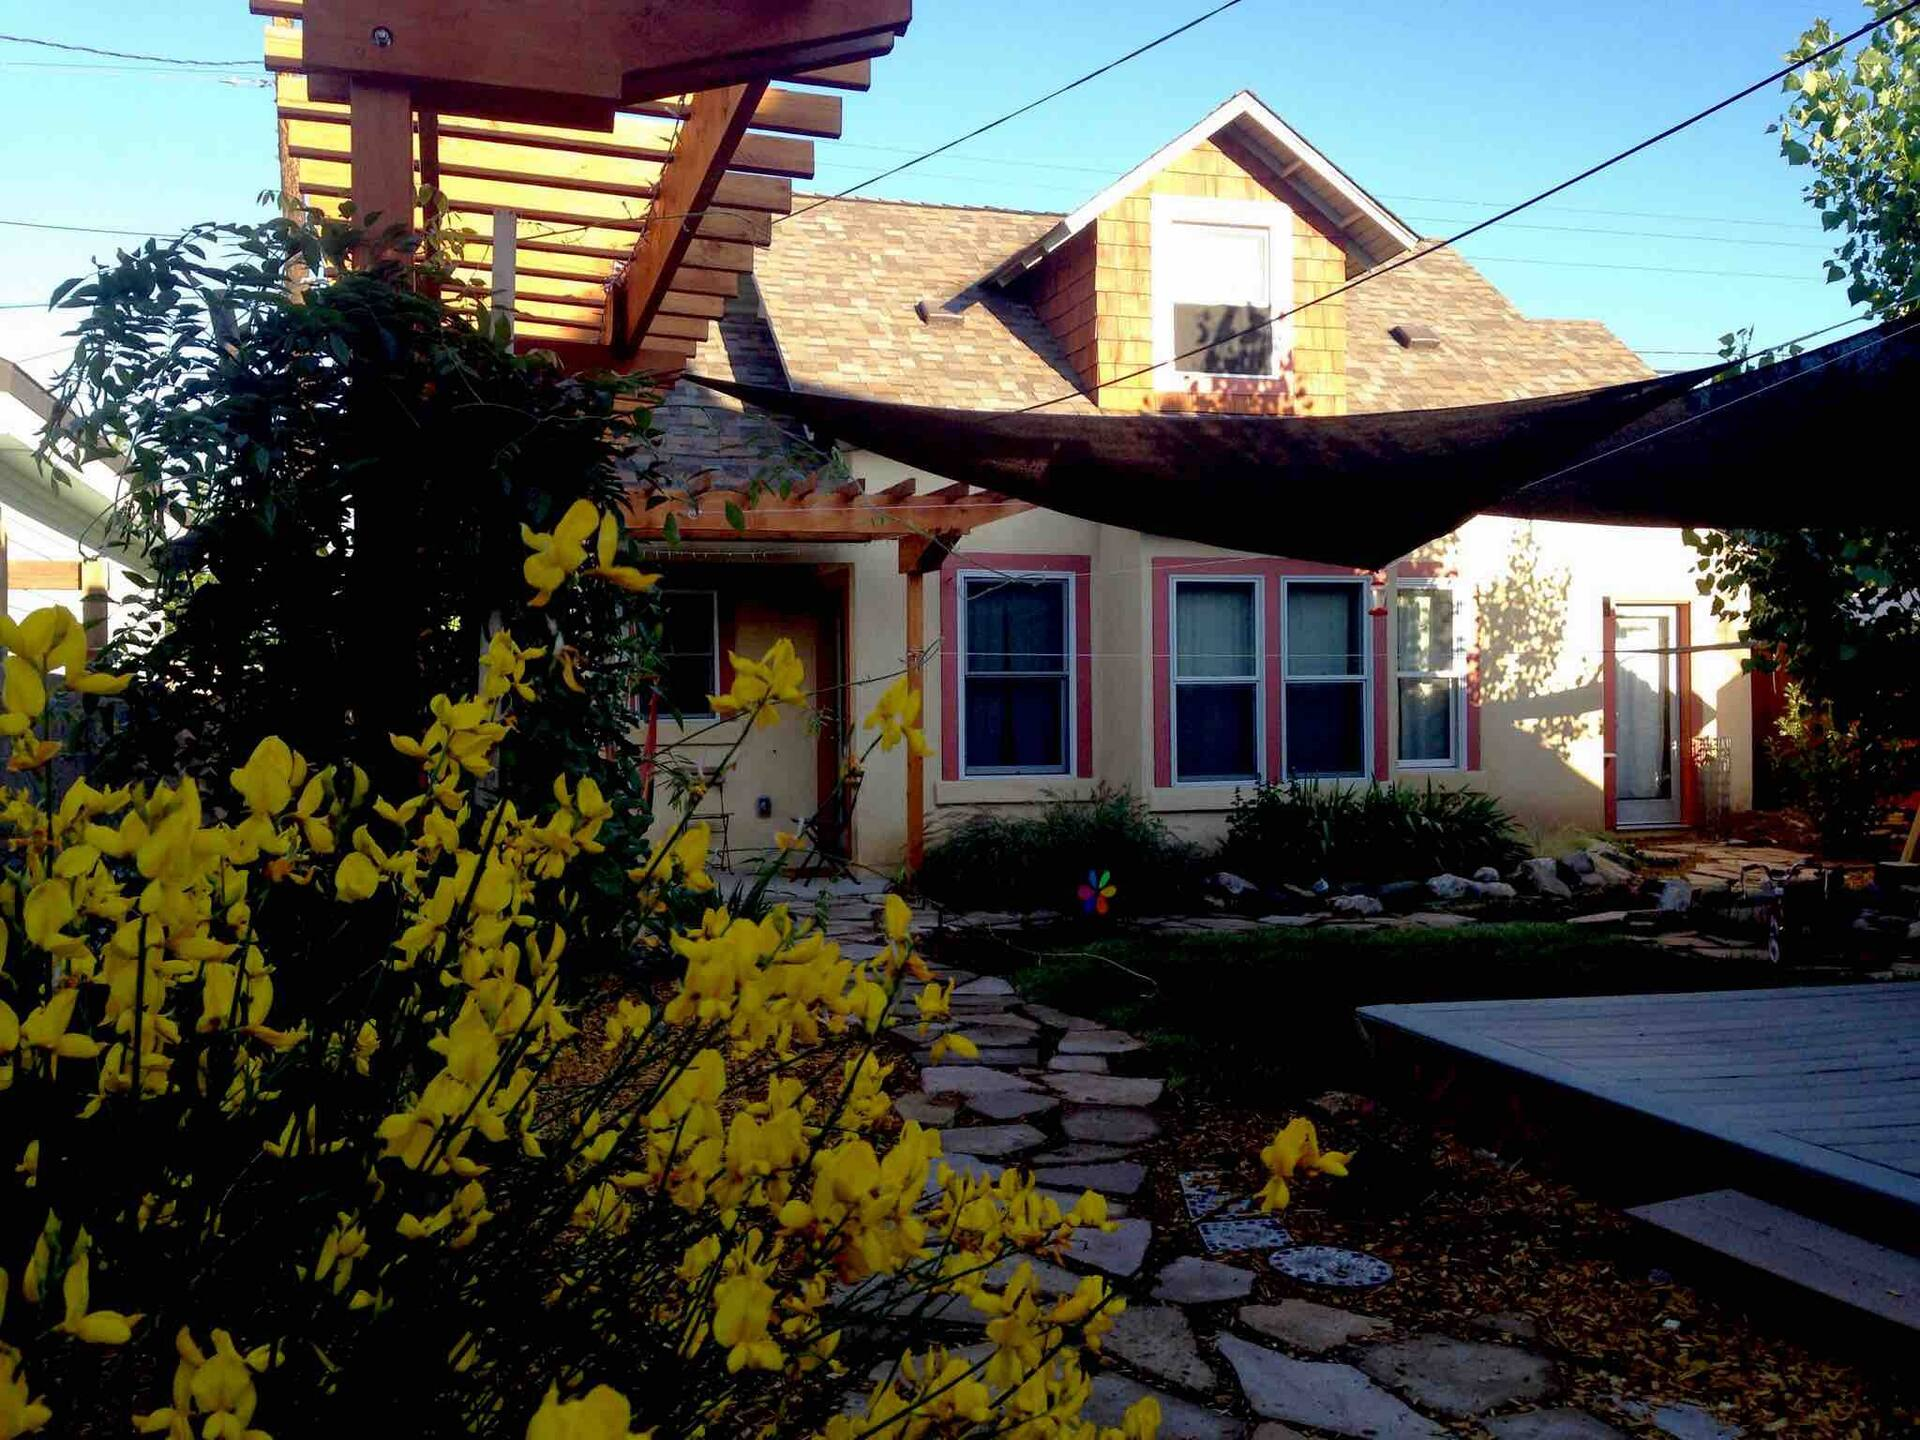 Best Airbnbs in Albuquerque, New Mexico